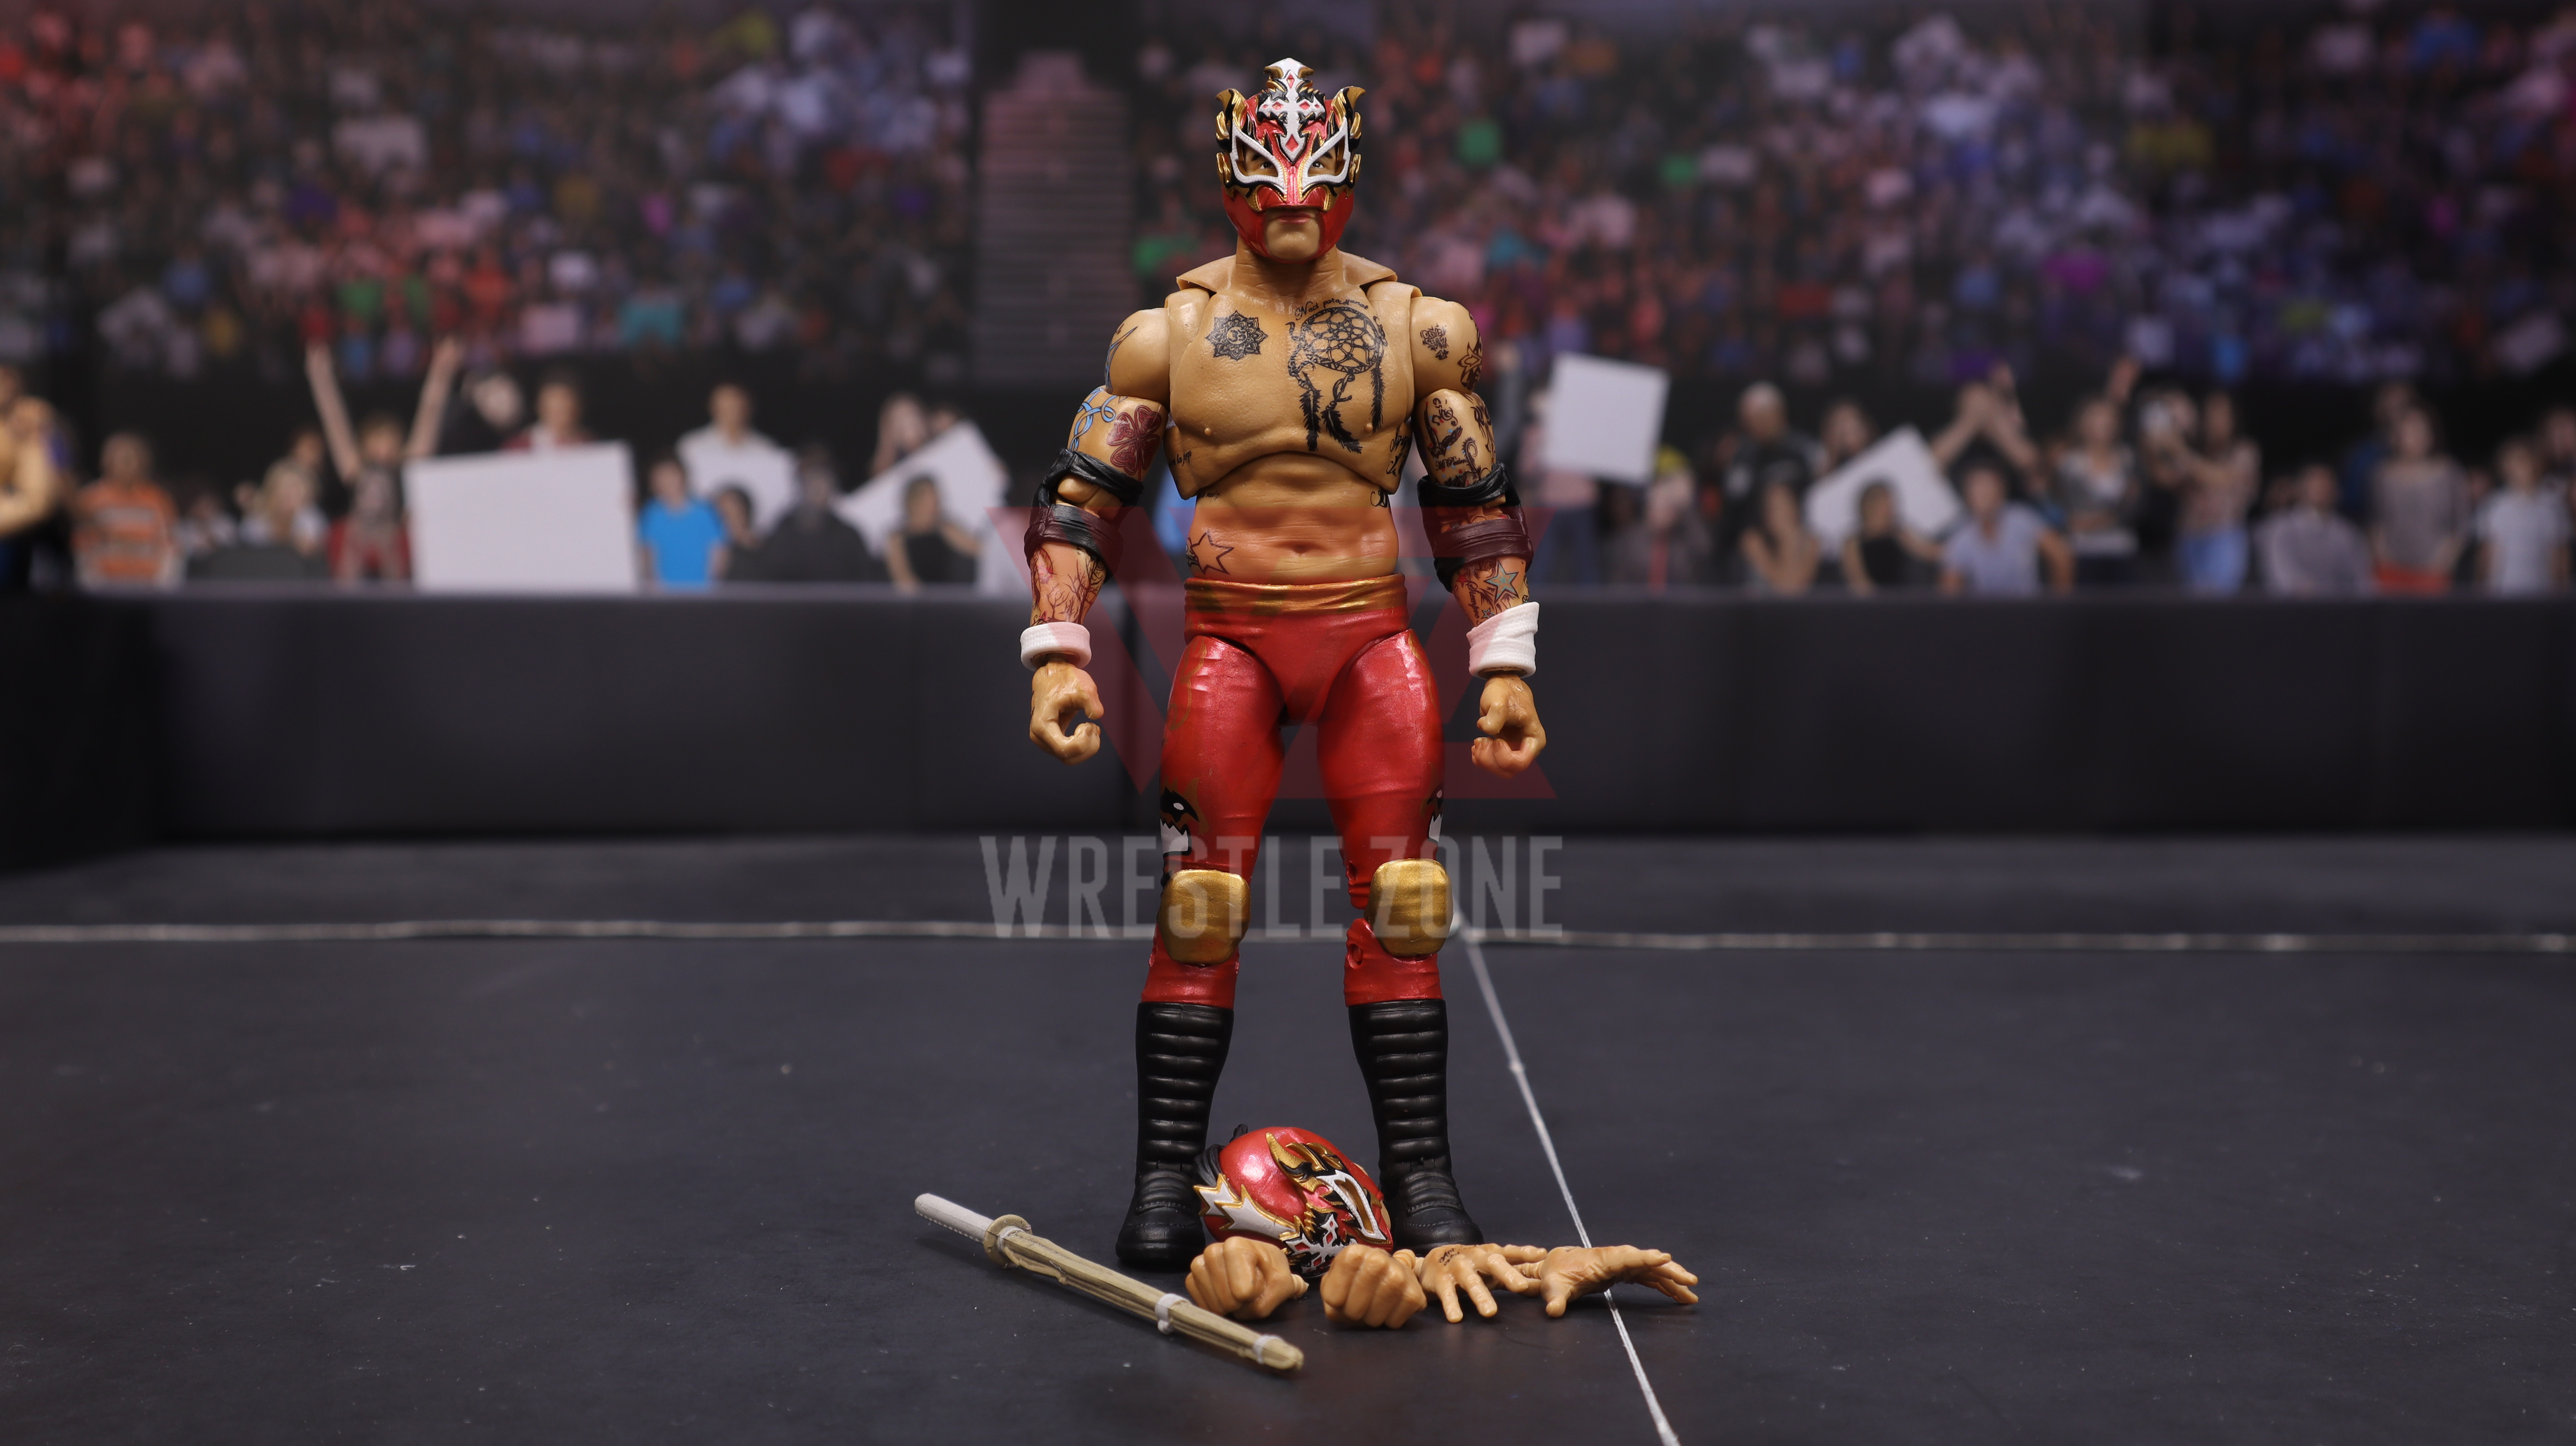 wz_legendsofluchalibre_series1_rey_20210219_2777